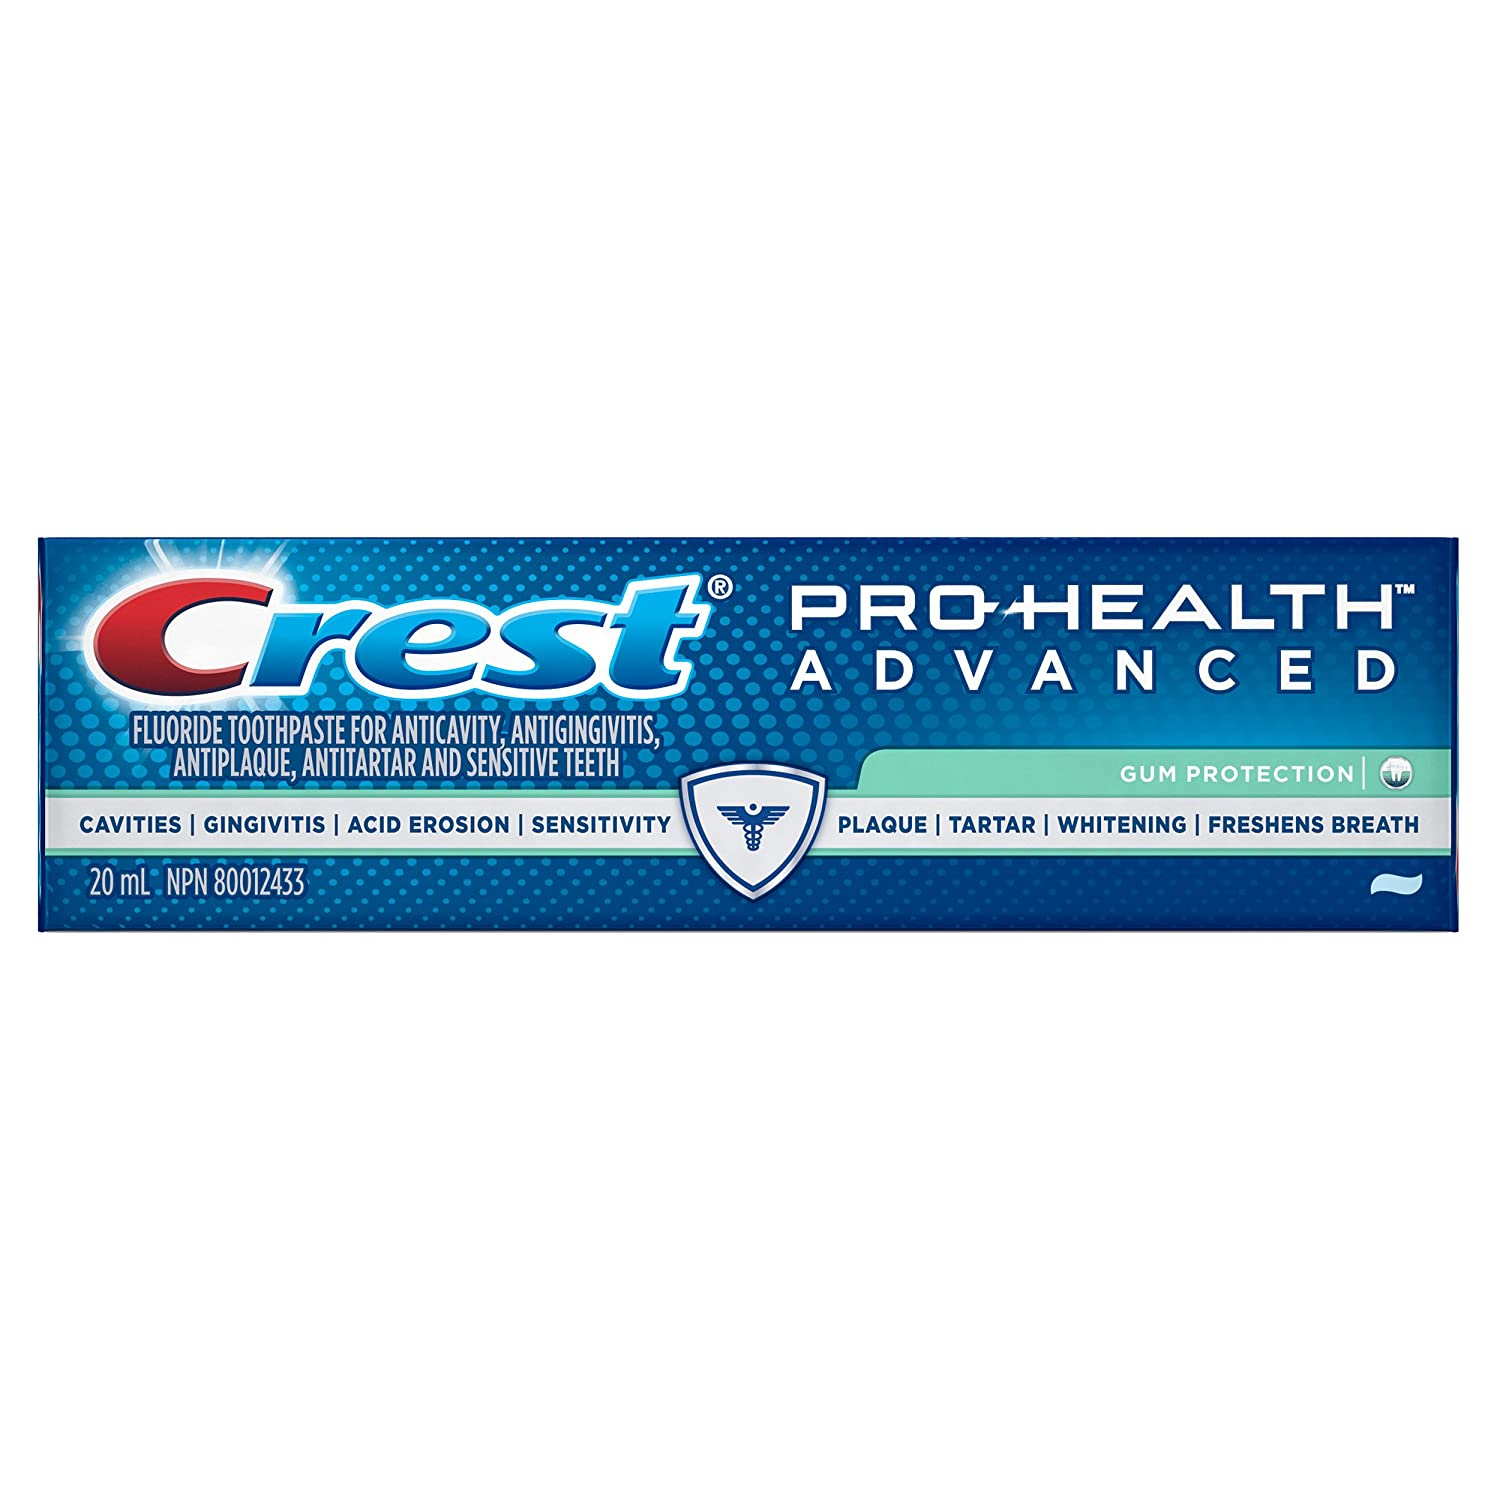 Crest Pro-Health Advanced Gum Protection Toothpaste, 20 ml